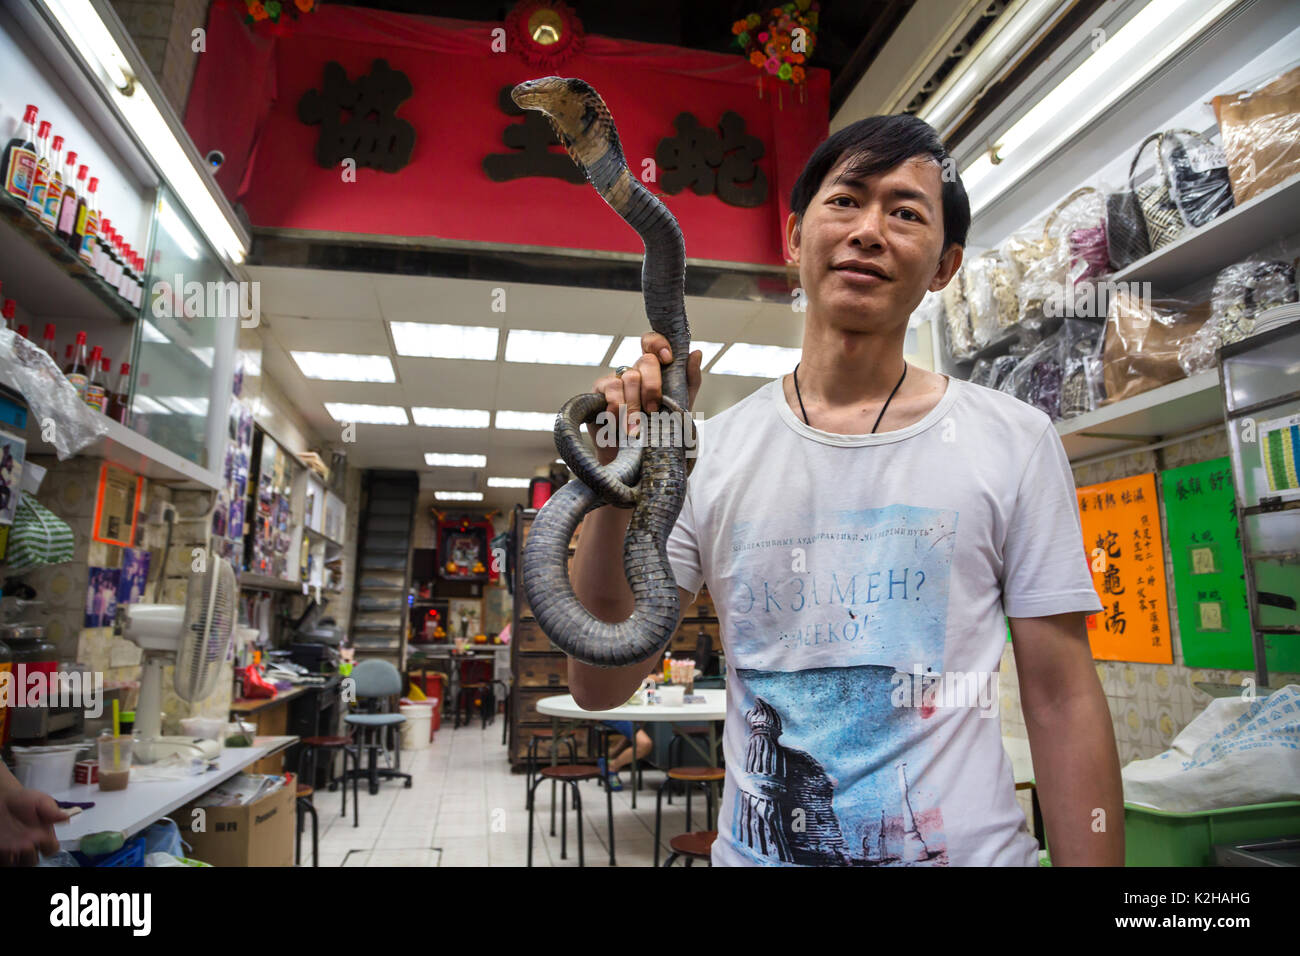 Snake soup seller in the streets of Kowloon, restaurant in Hong Kong - Stock Image